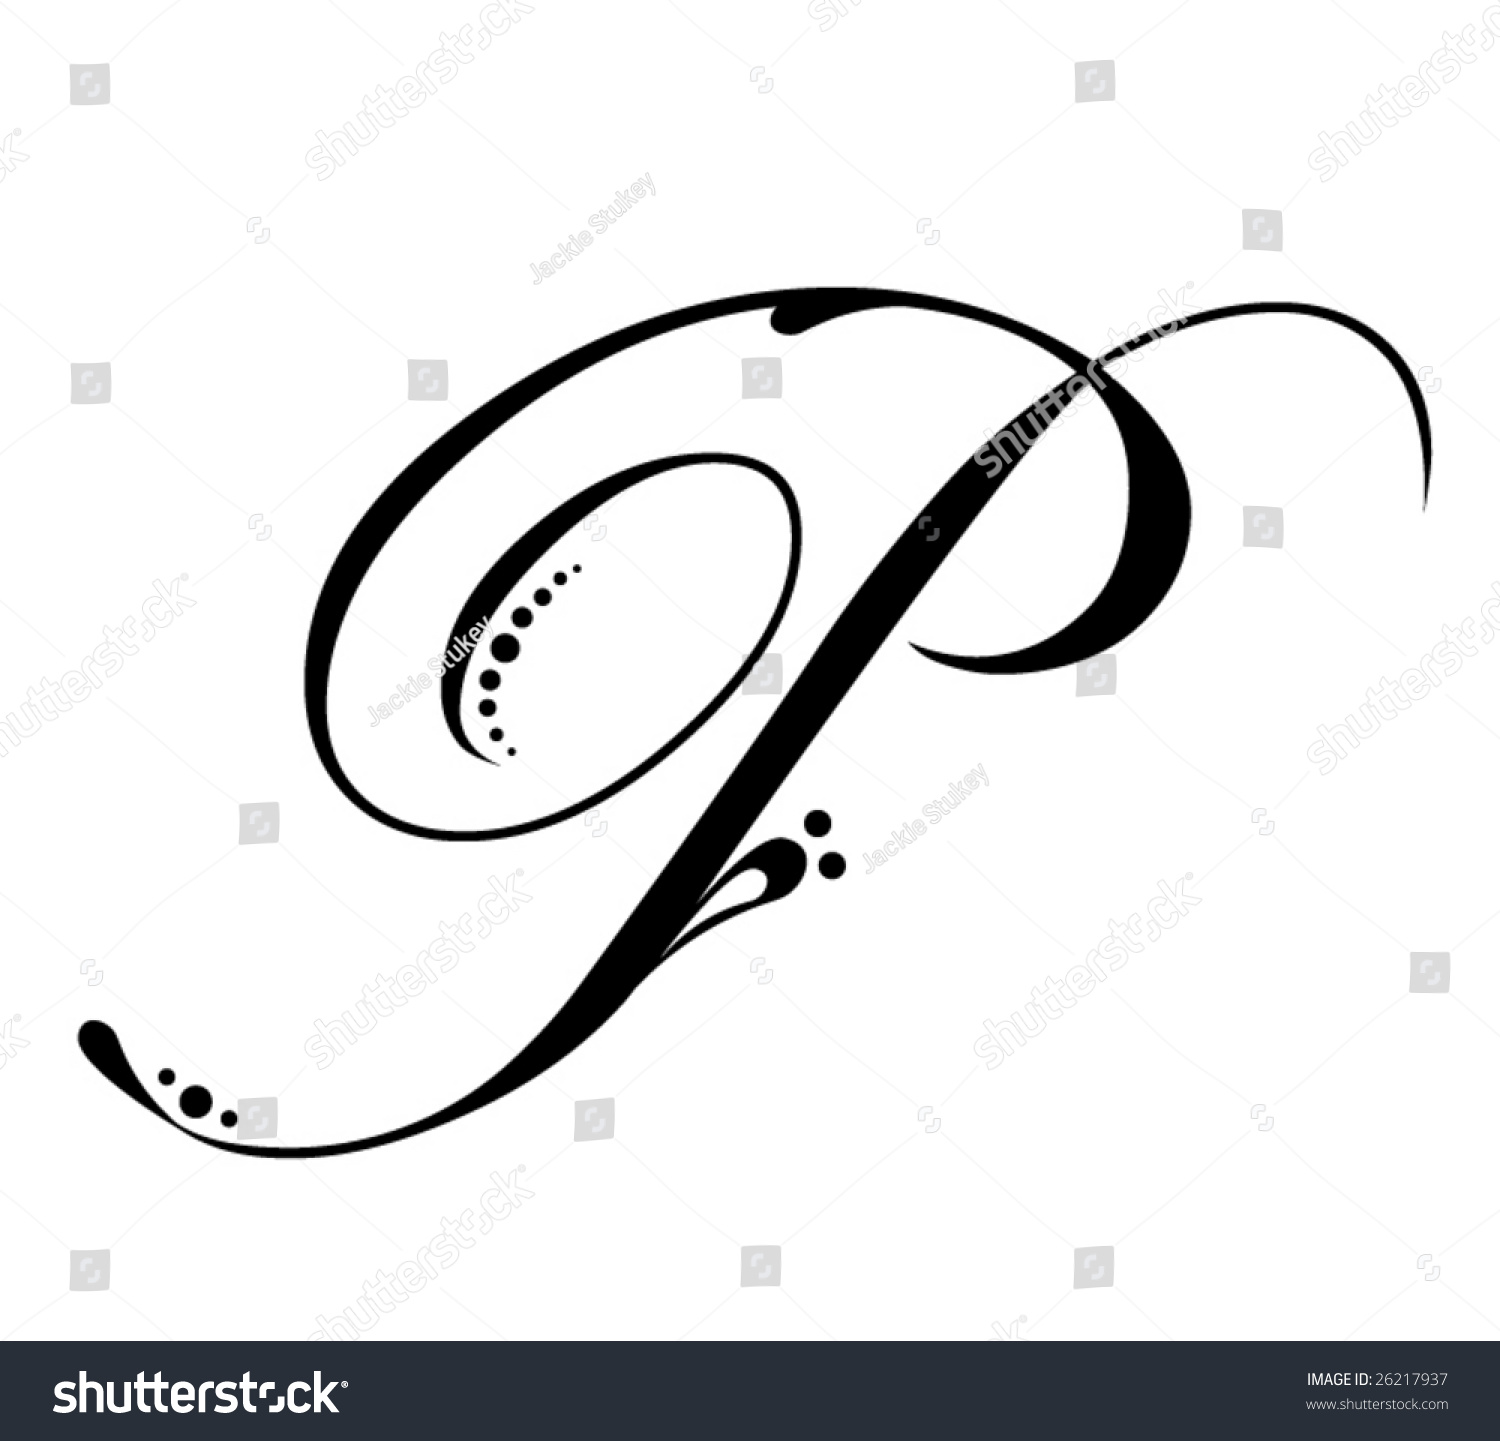 Worksheet P In Cursive the letter p in cursive scalien